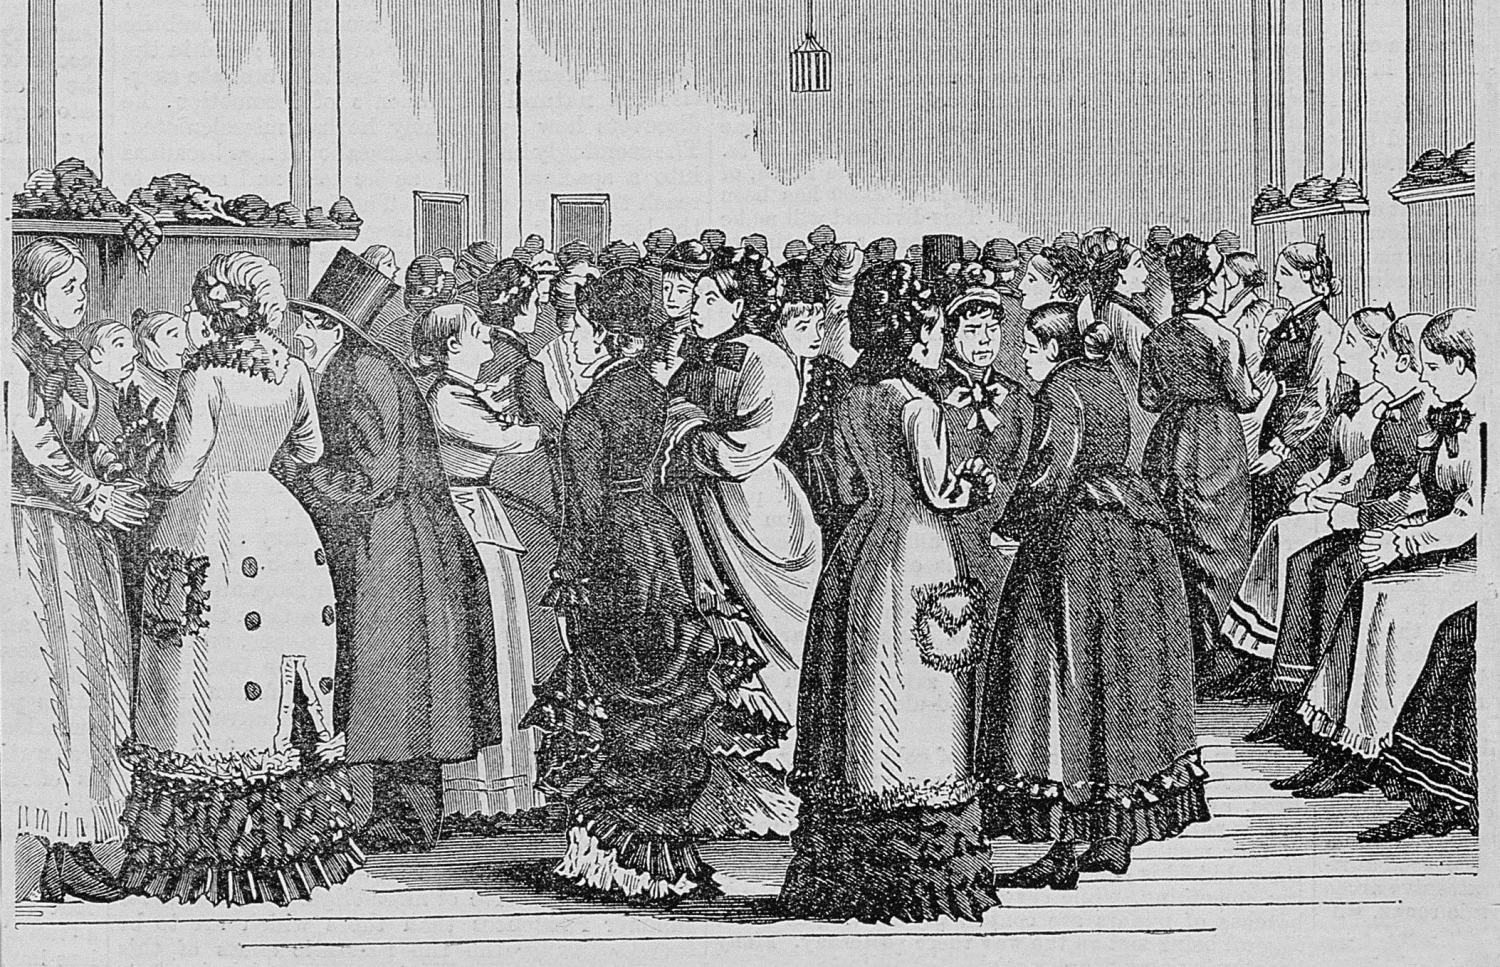 Drawing showing a large room filled with women and girls talking in groups. The women are wearing Victorian dresses and hats.